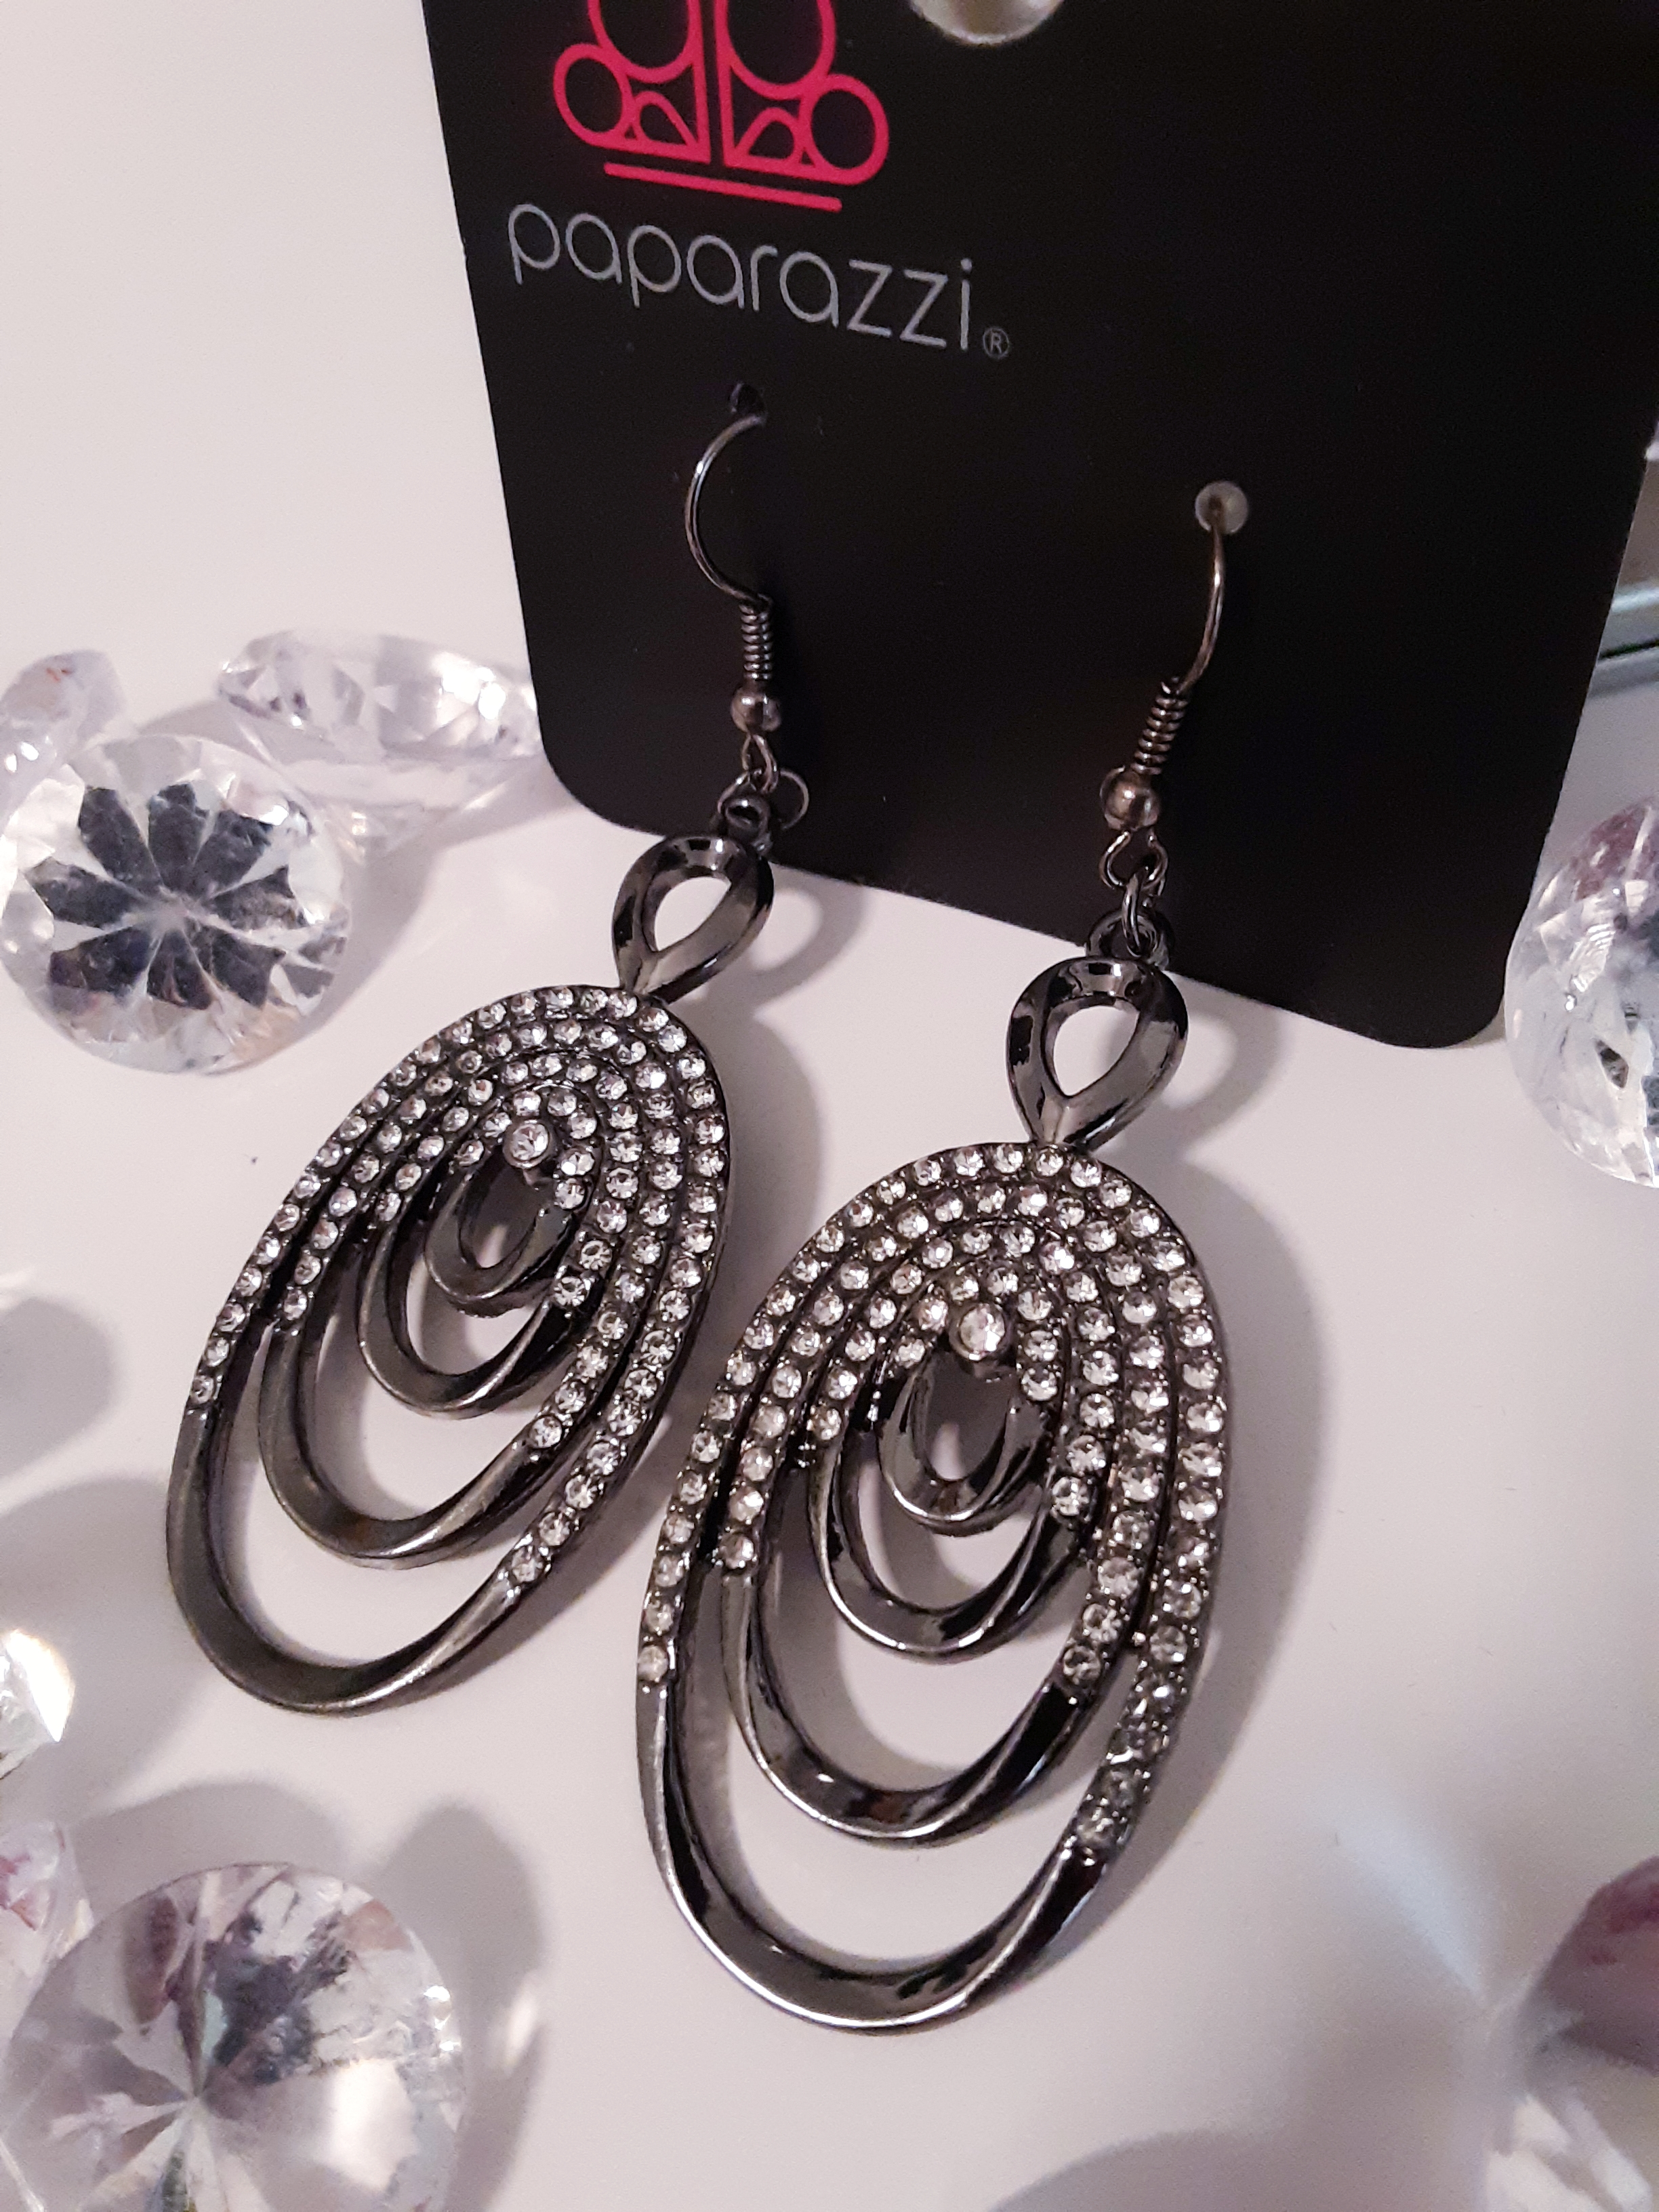 Gunmetal and Rhinestone Earrings  $5.00 Contact Jfay to Purchase